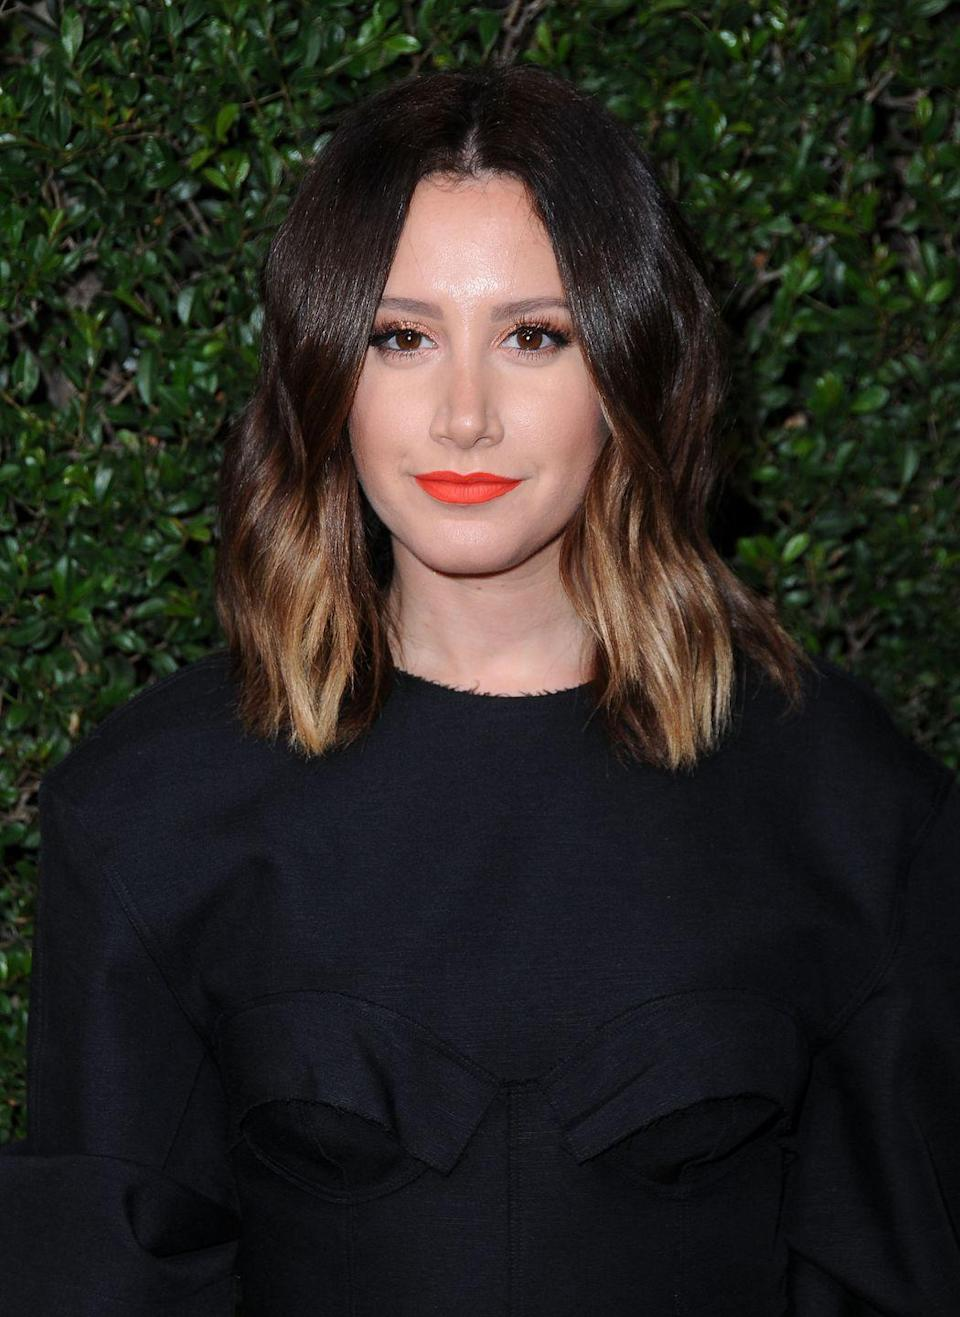 """<p>Back in 2007, the <em>High School Musical </em>star had a rhinoplasty procedure to fix a deviated septum. While Ashley admitted to getting the procedure to <em><a href=""""https://people.com/bodies/high-school-musicals-ashley-tisdale-gets-nose-job/"""" rel=""""nofollow noopener"""" target=""""_blank"""" data-ylk=""""slk:PEOPLE"""" class=""""link rapid-noclick-resp"""">PEOPLE</a></em>, she also insisted that she had it done due to trouble breathing out of the right side of her nose. </p><p>""""I didn't do this because I believe in plastic surgery,"""" she said. """"I did this to help my health... I just want to be honest because my fans are everything to me.""""<br></p>"""